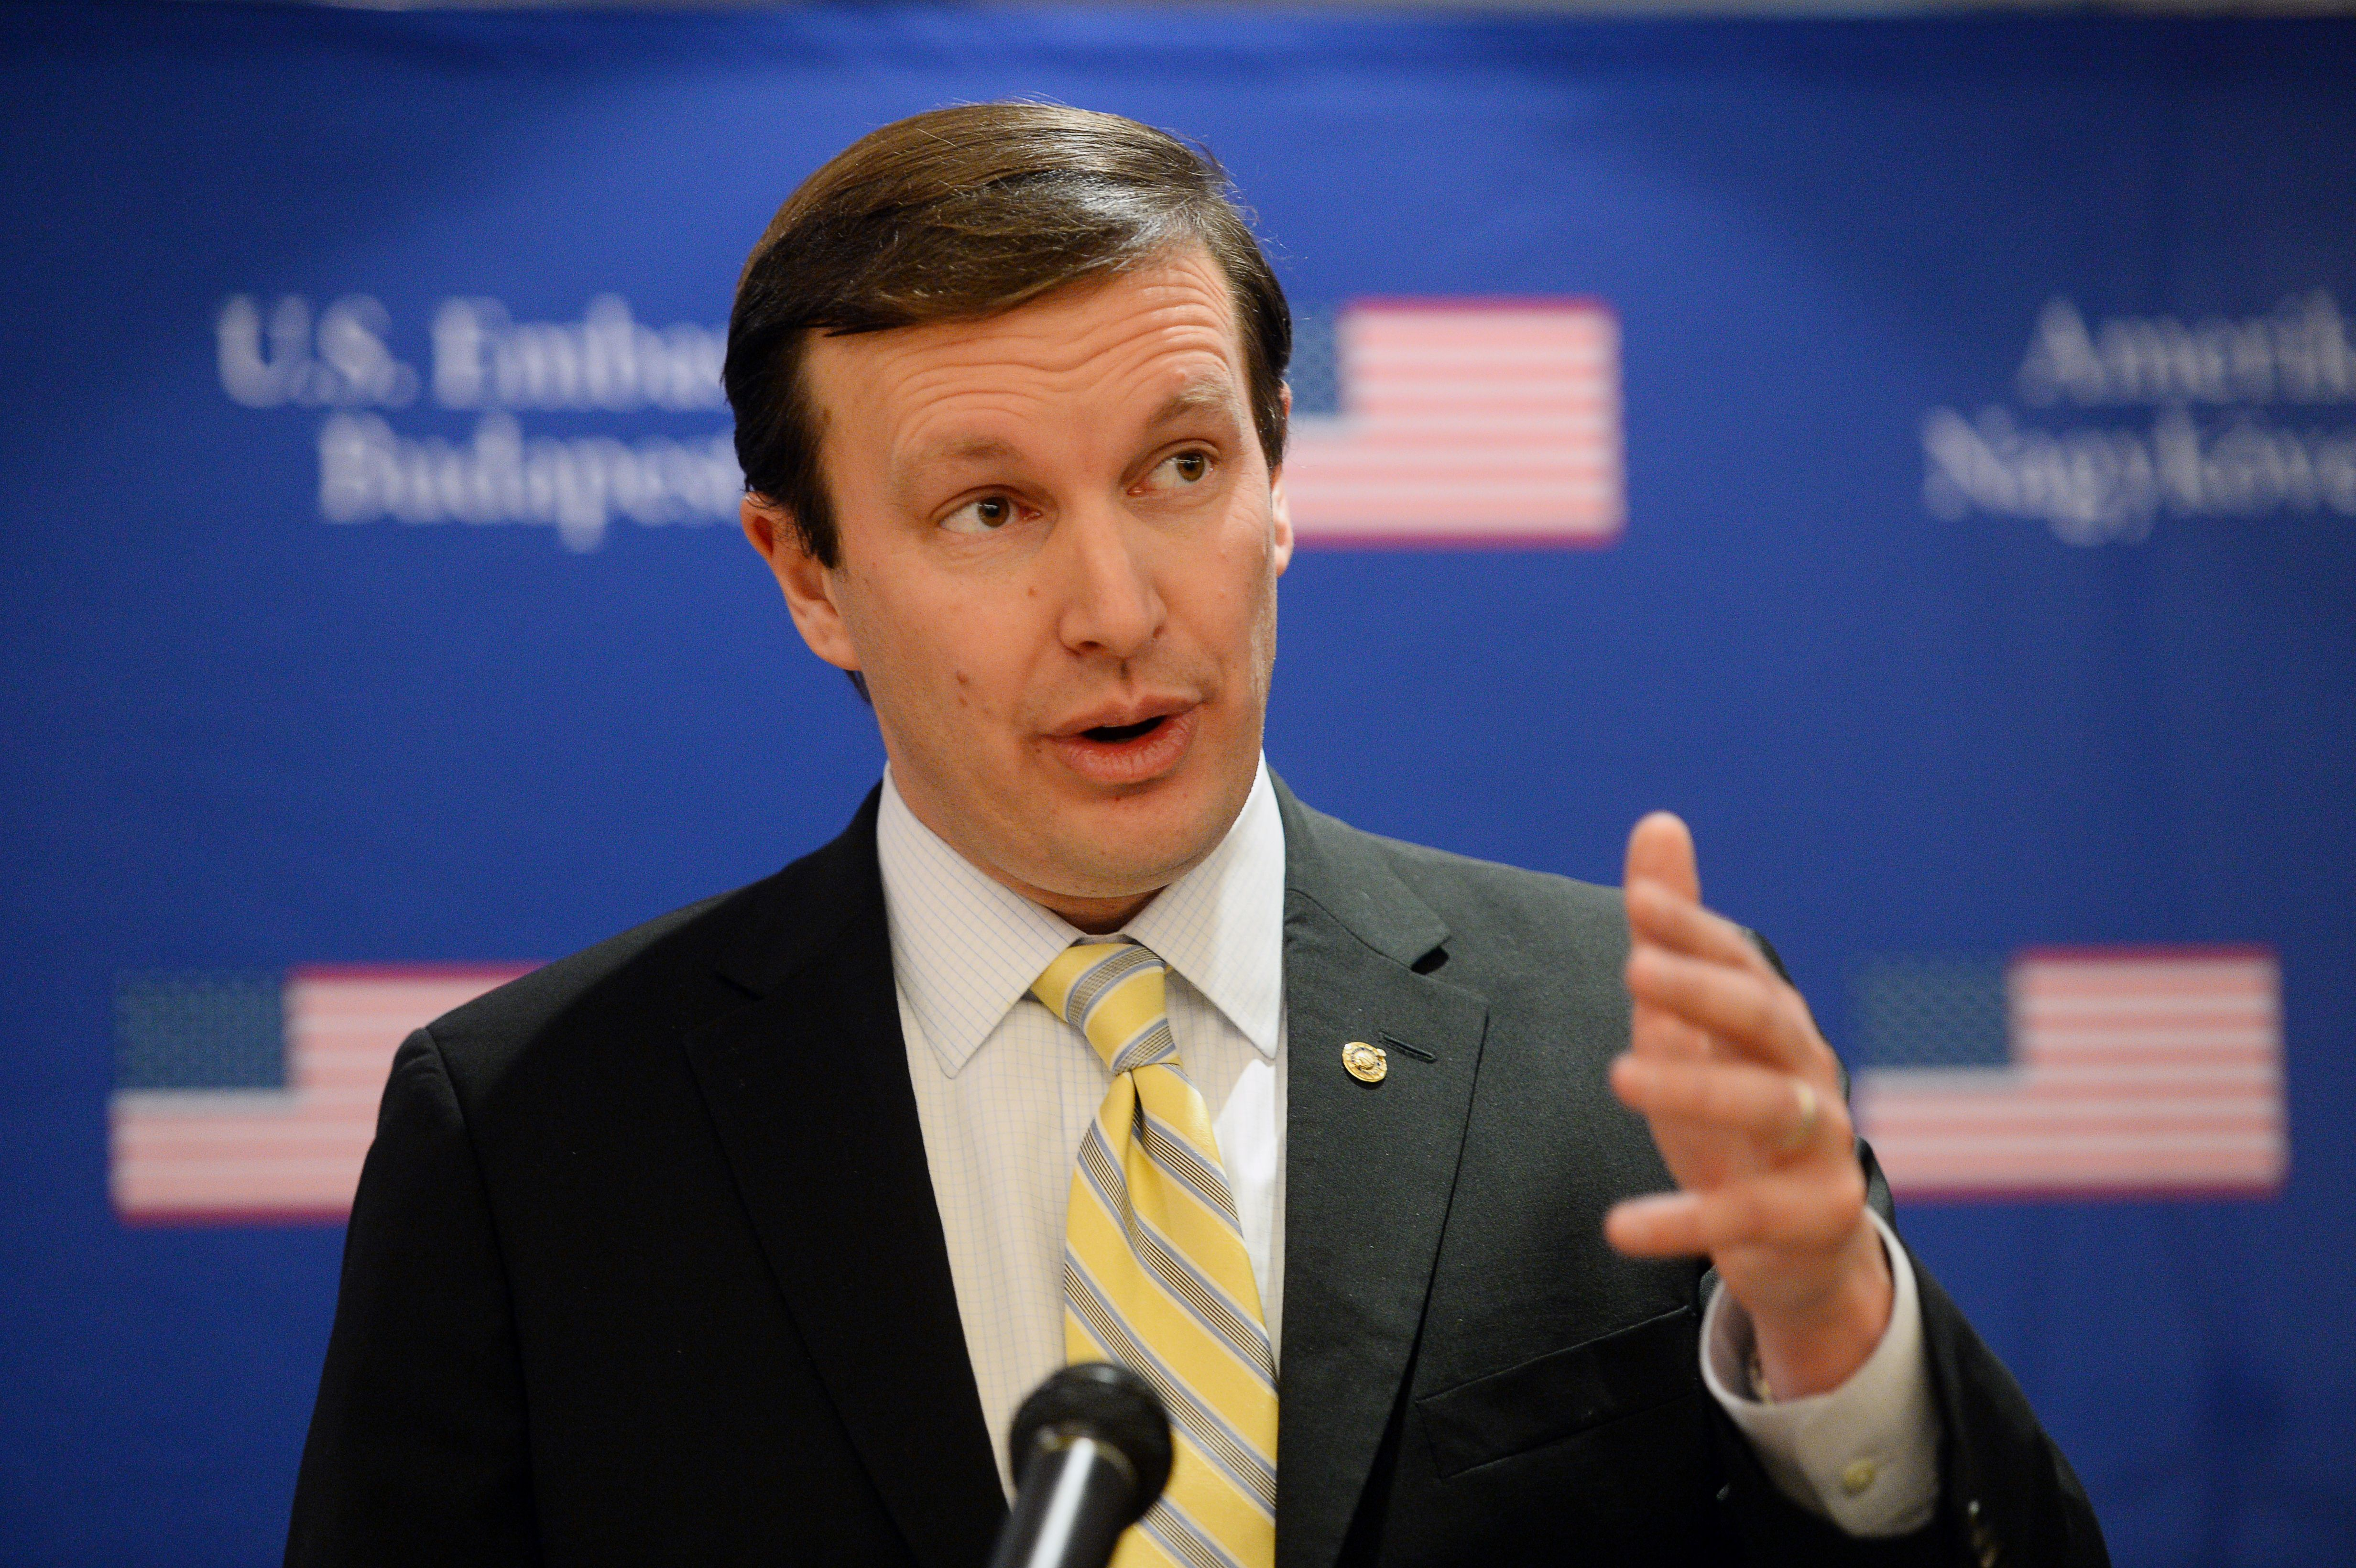 Junior United States Senator from Connecticut Chris Murphy addresses journalists in Budapest on Jan. 31, 2014.